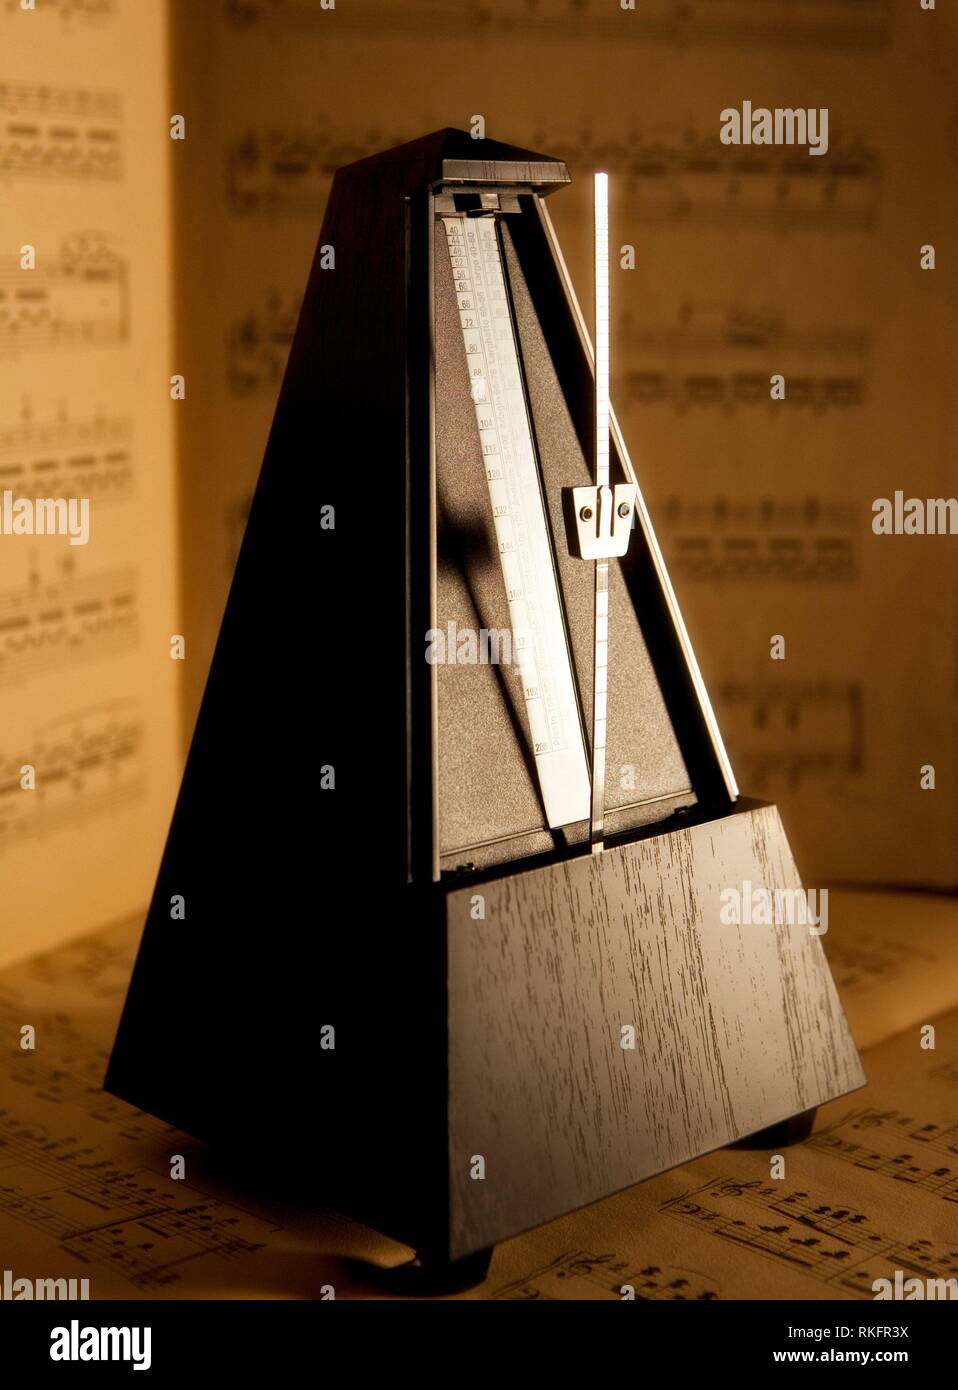 Metronome - The Instrument of Keeping Correct Beat Playing Music. - Stock Image